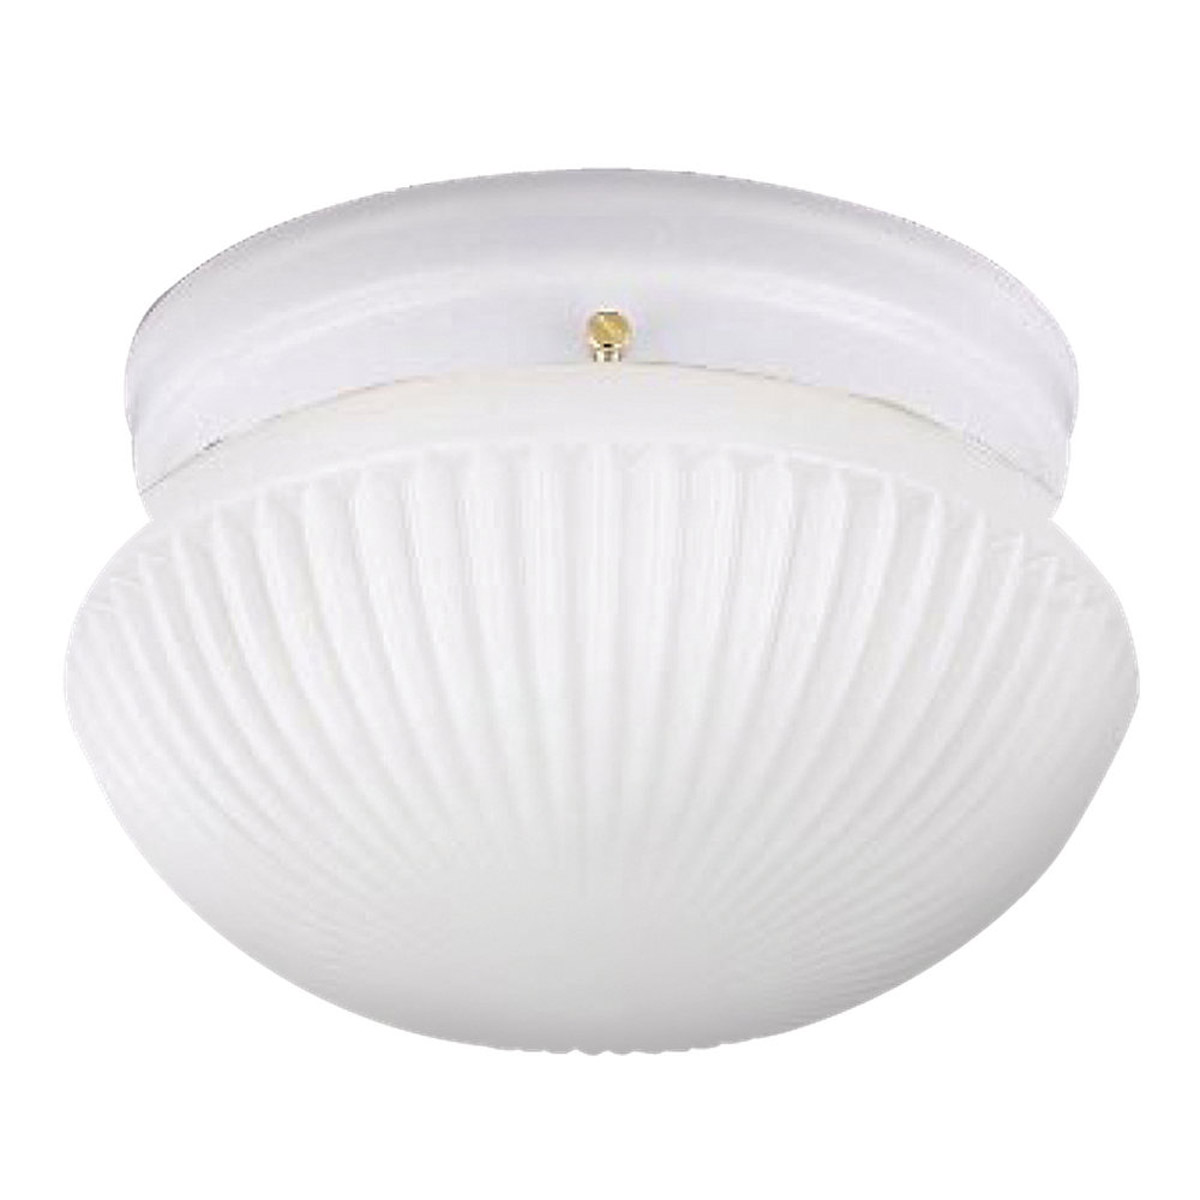 Sea Gull Lighting Webster 1 Light Fluorescent Flush Mount in White 5921BLE-15 photo